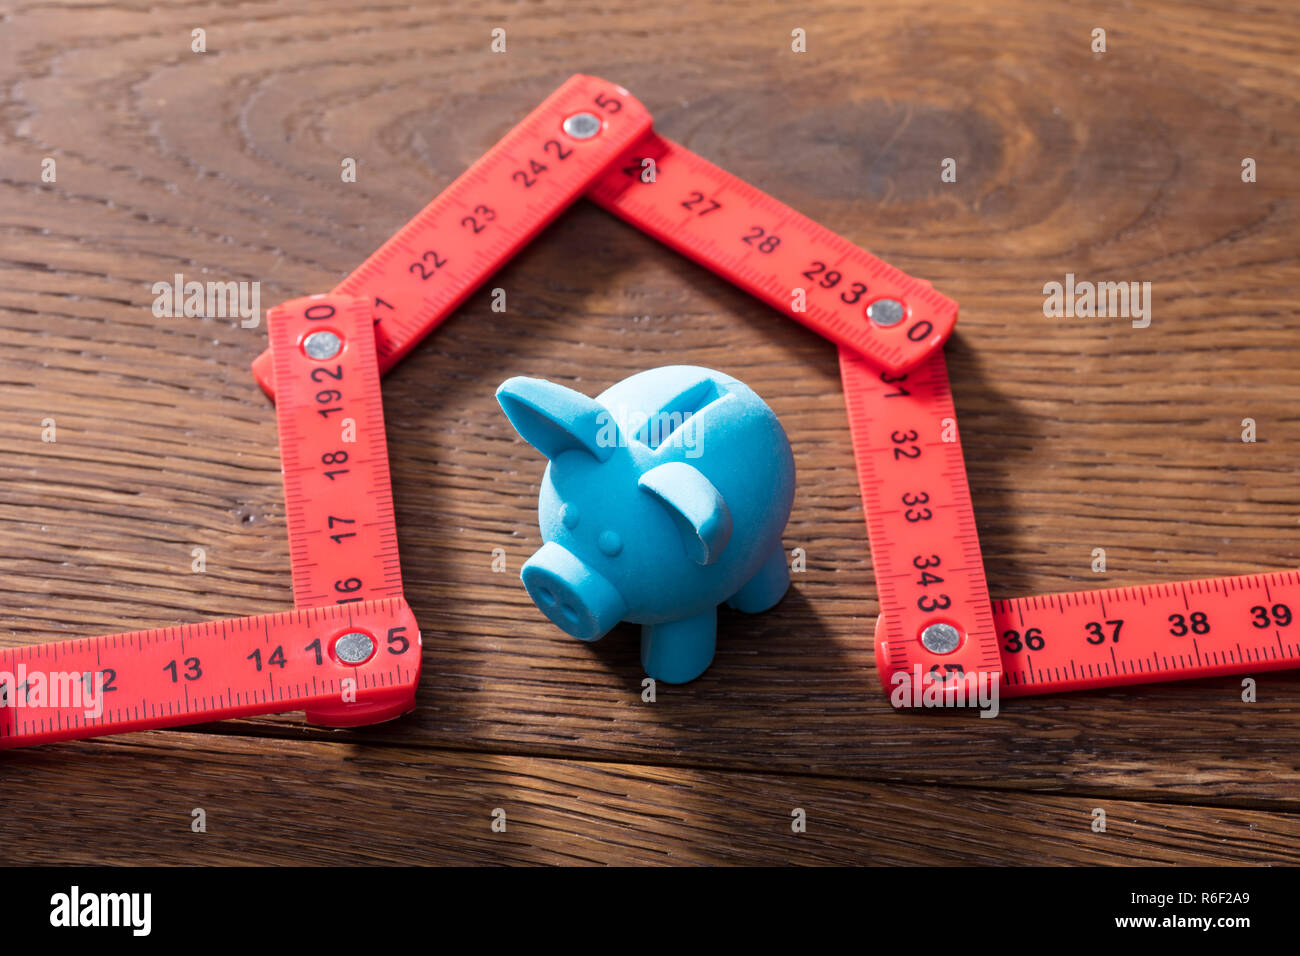 Piggybank Under The House Made With Measuring Tape - Stock Image